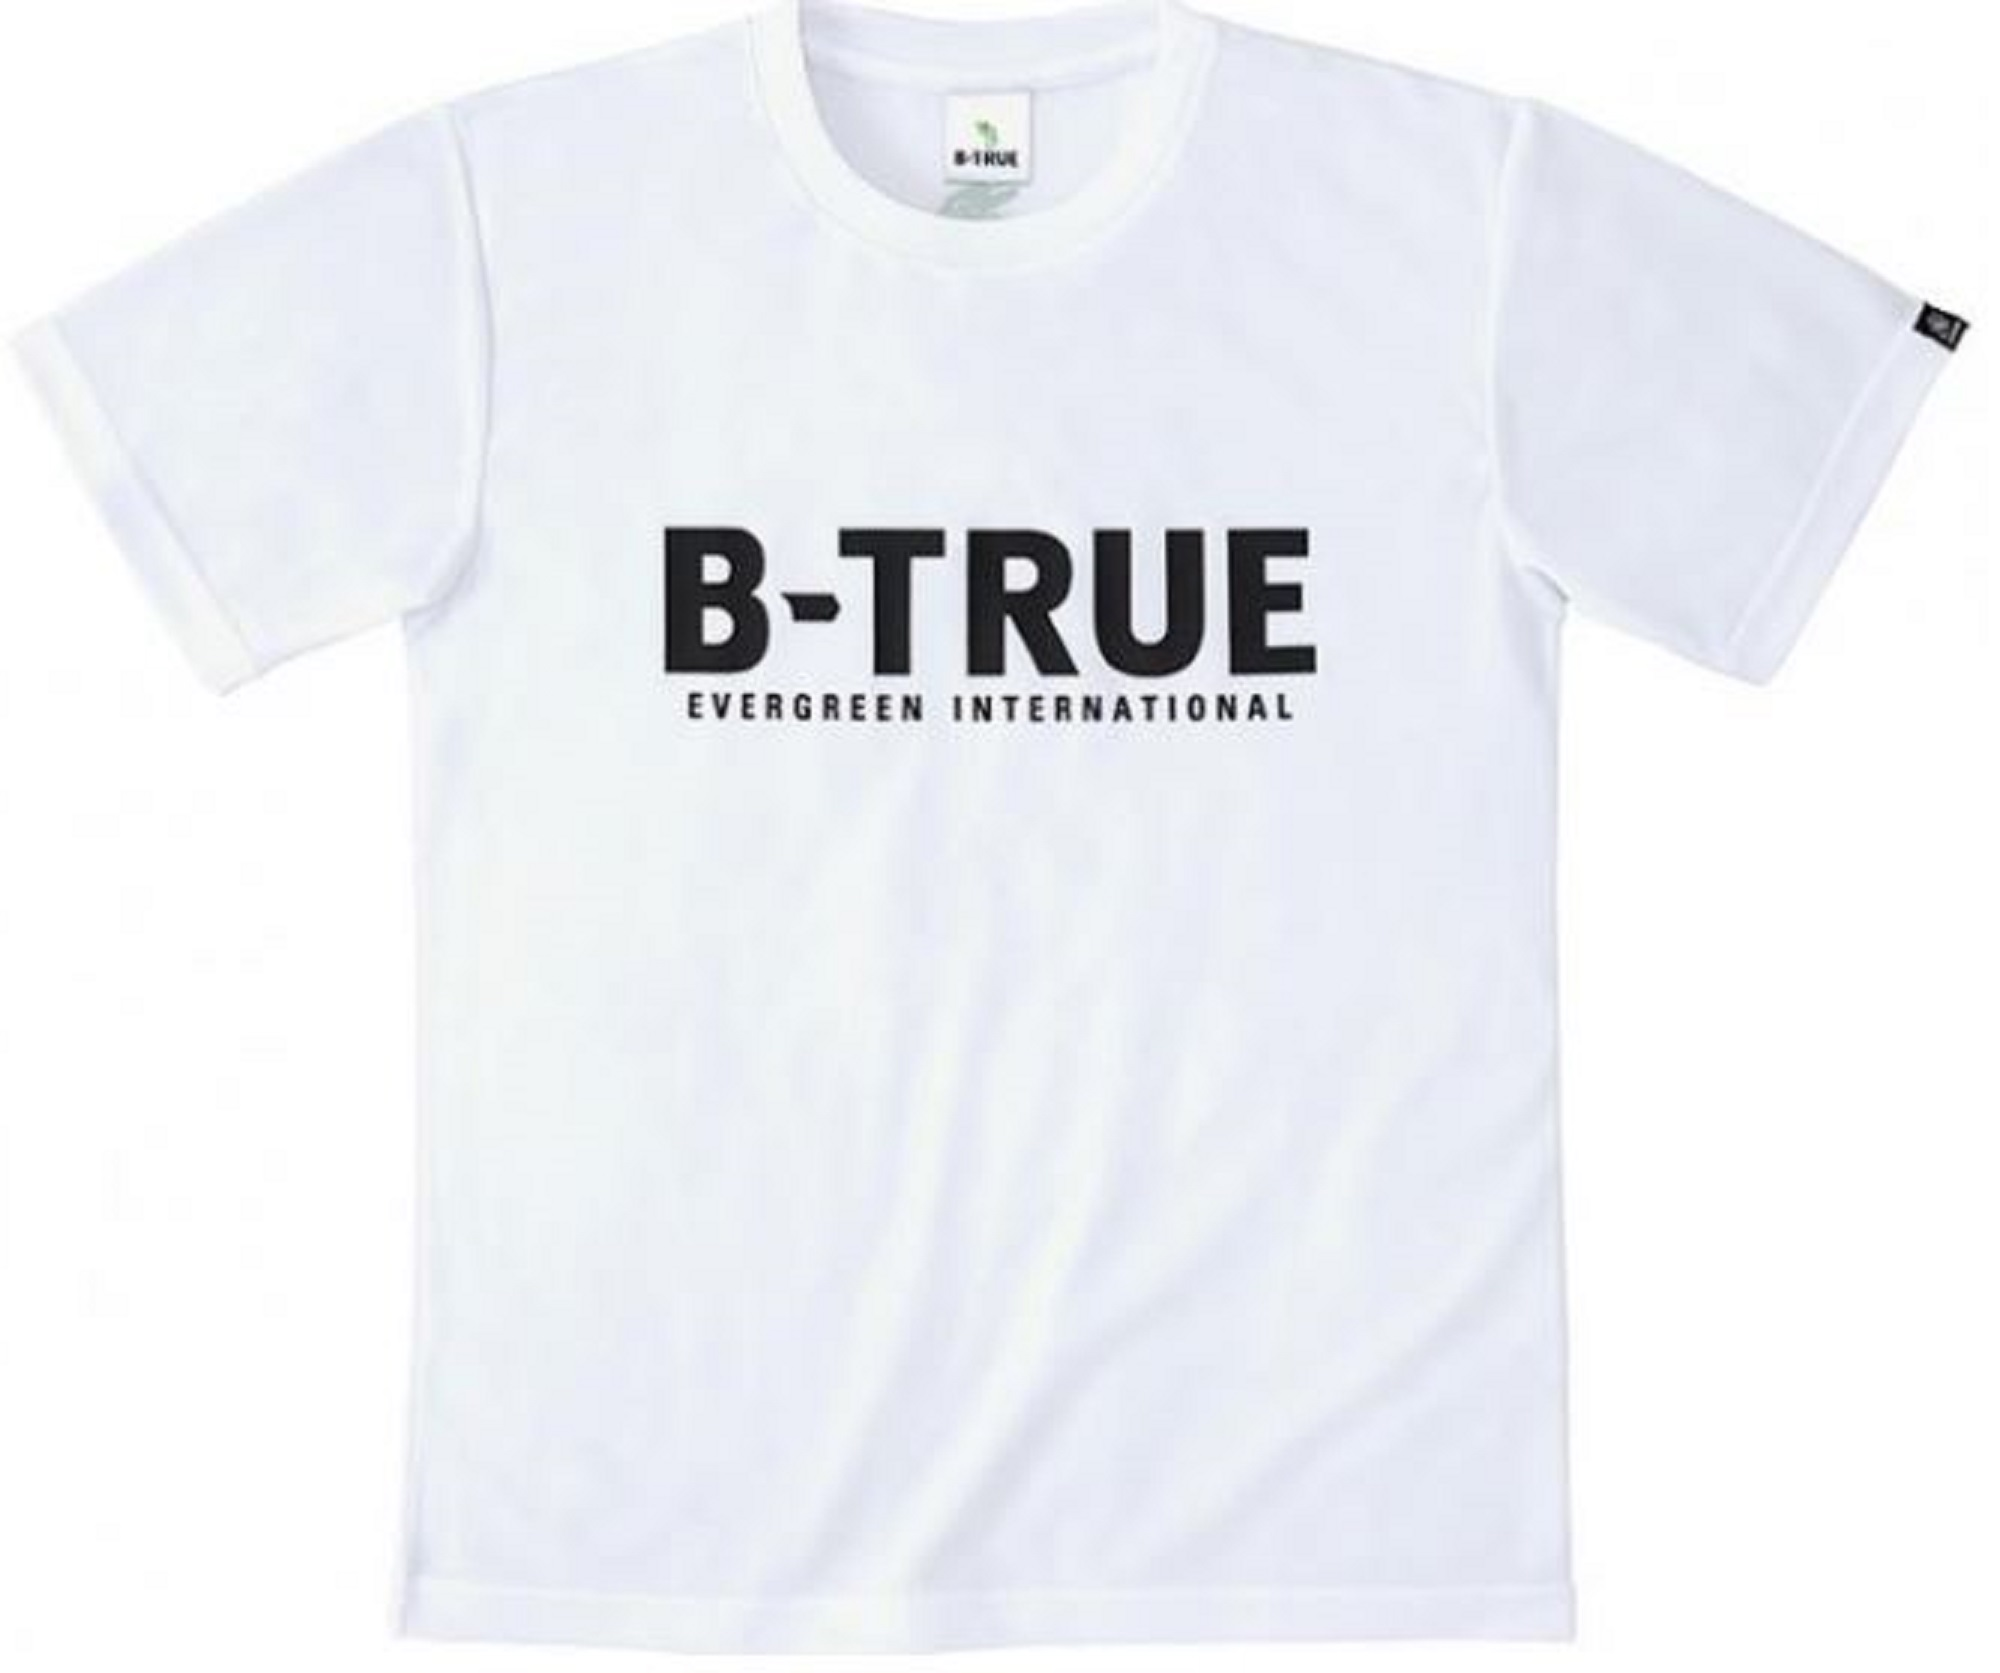 Evergreen T-Shirt Dry Fit Short Sleeve B-True A Type Size LL White (7770)